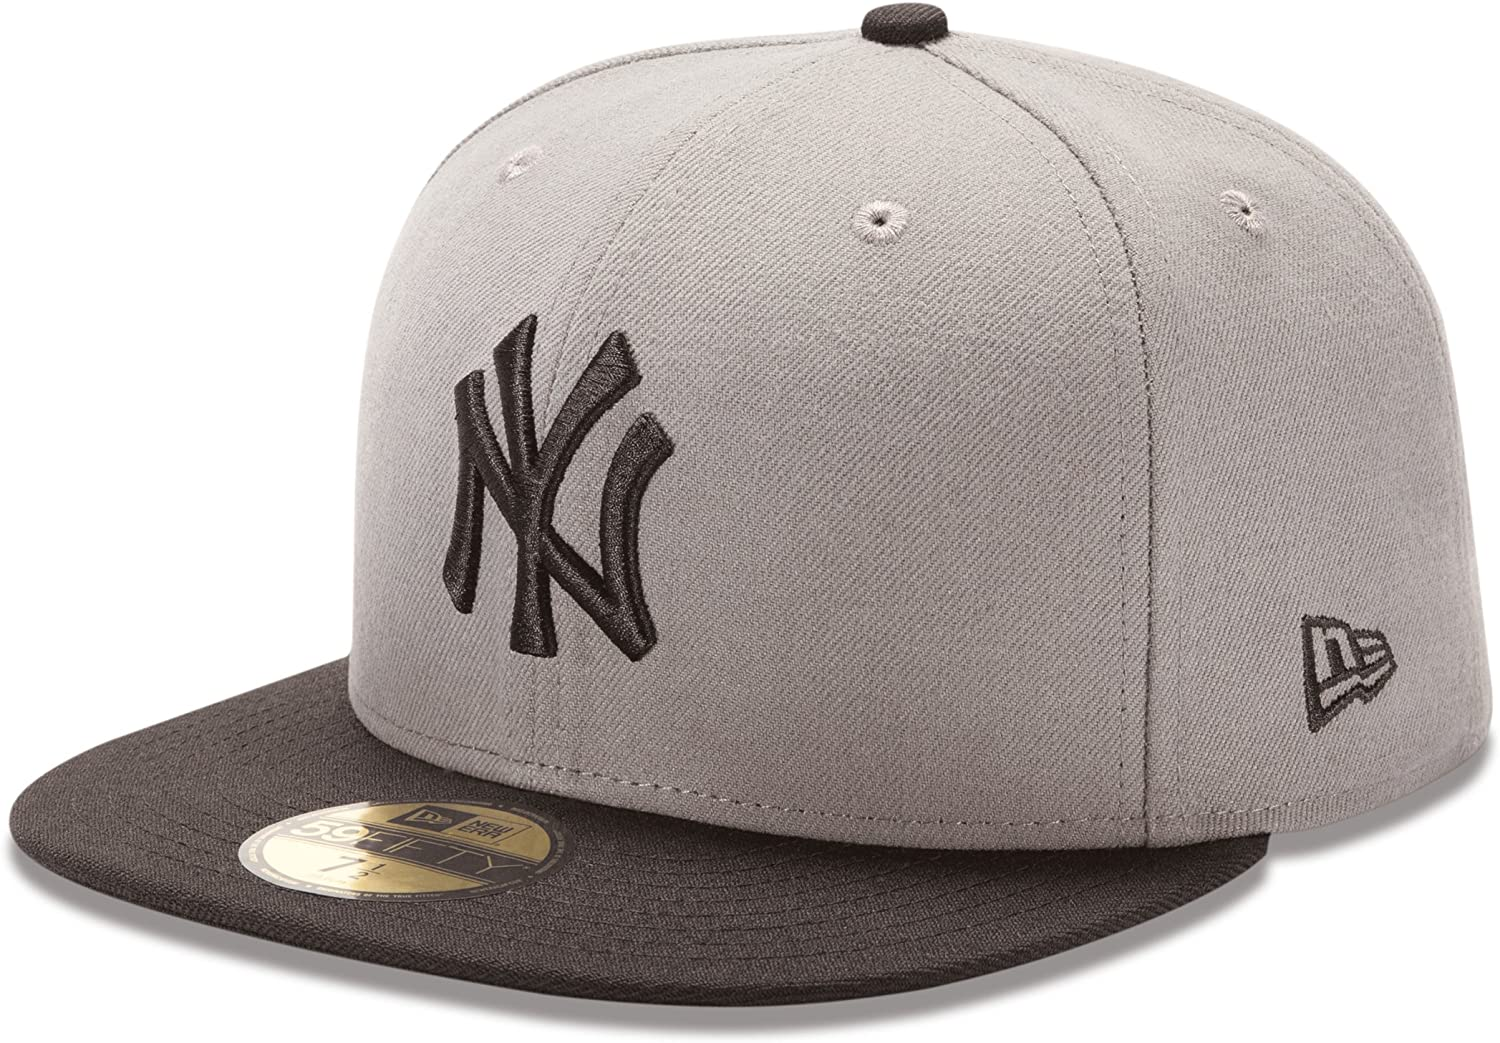 New Era 5950 Los Angeles Kings Fitted Hat Storm Gray//White//Black Men/'s Cap